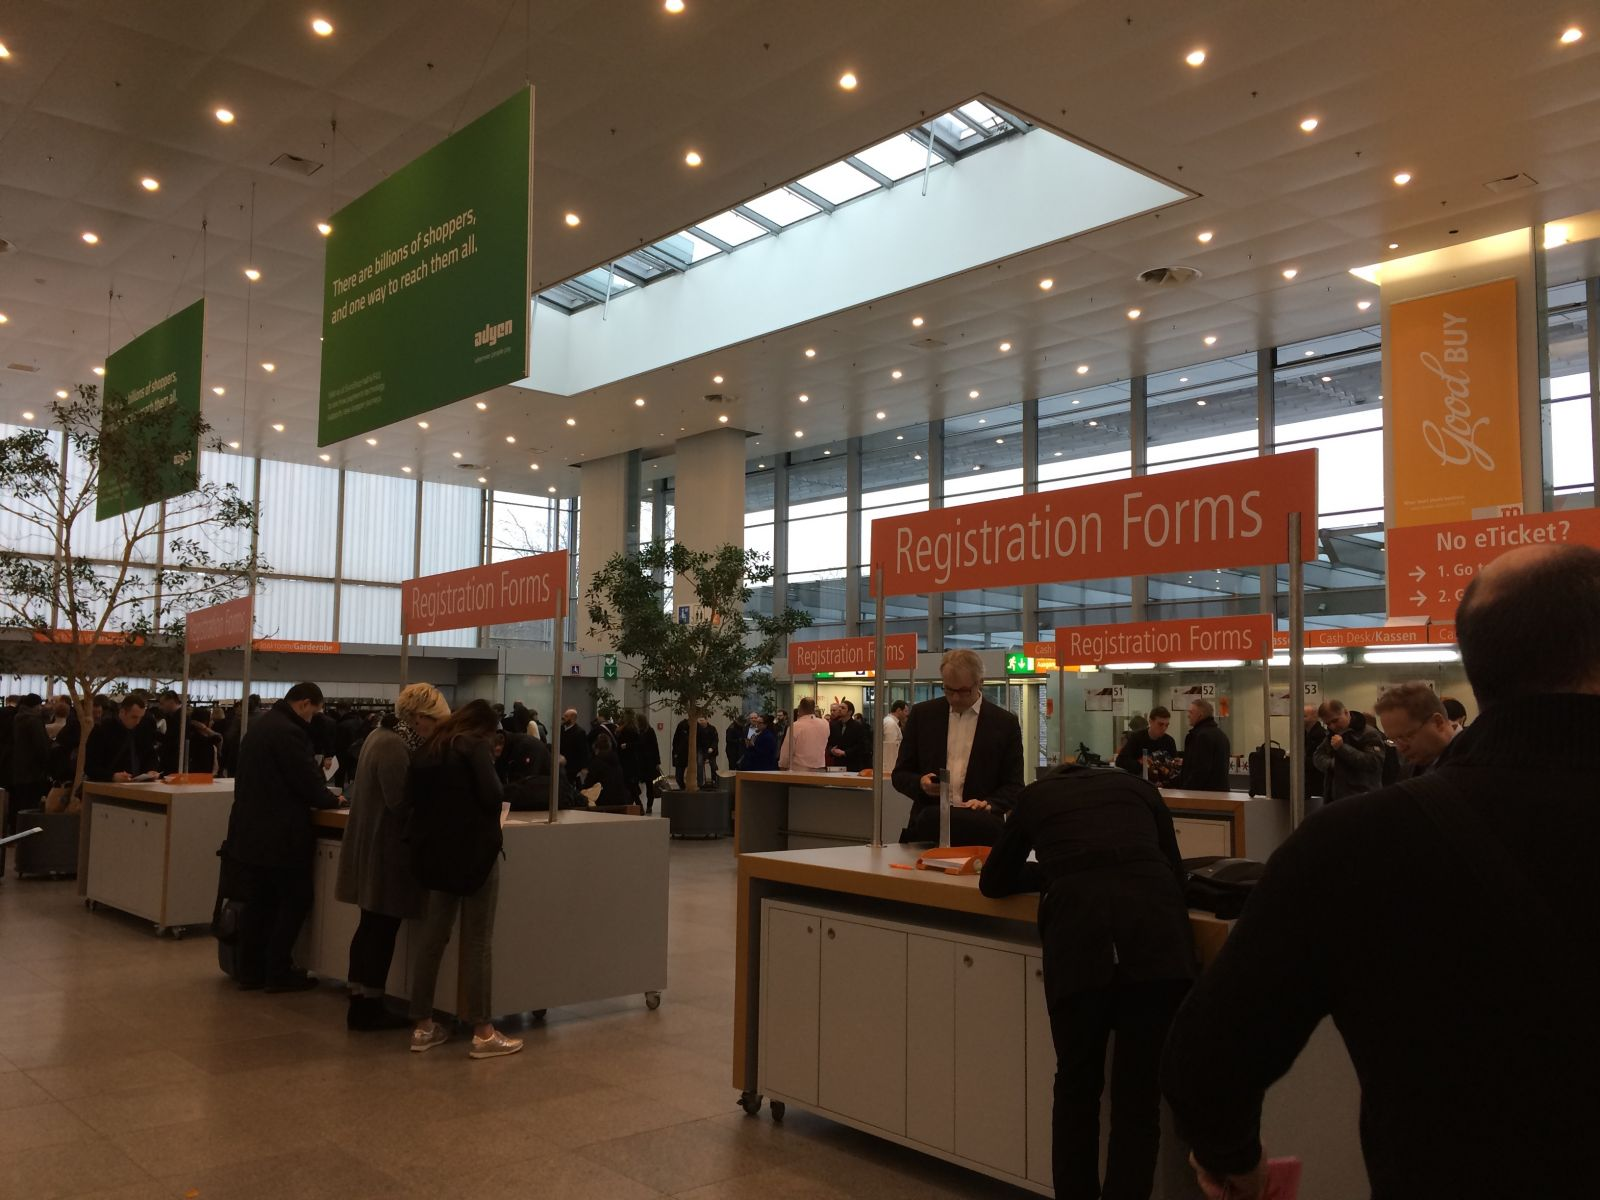 EuroShop Registration